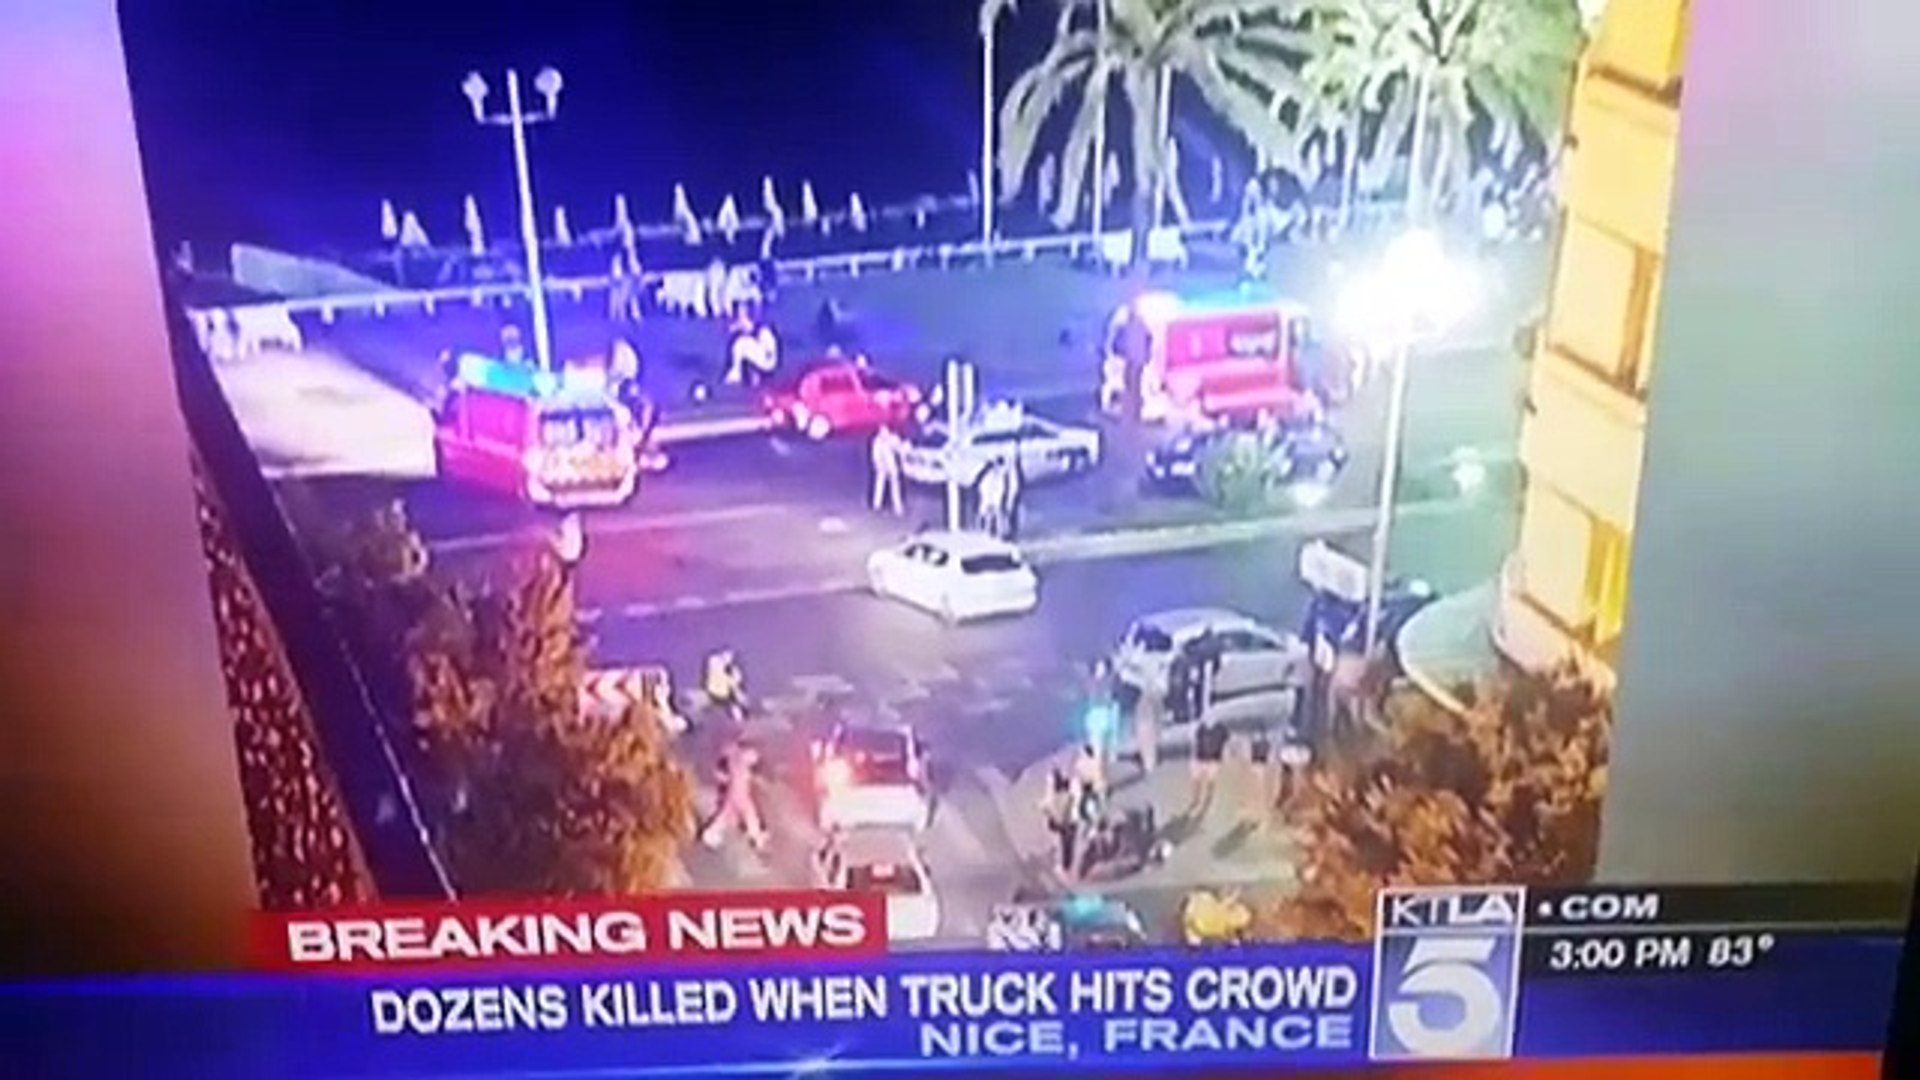 BREAKING NEWS TRUCK RUNS INTO CROWD 30 KILLED NICE FRANCE 7-14-2016